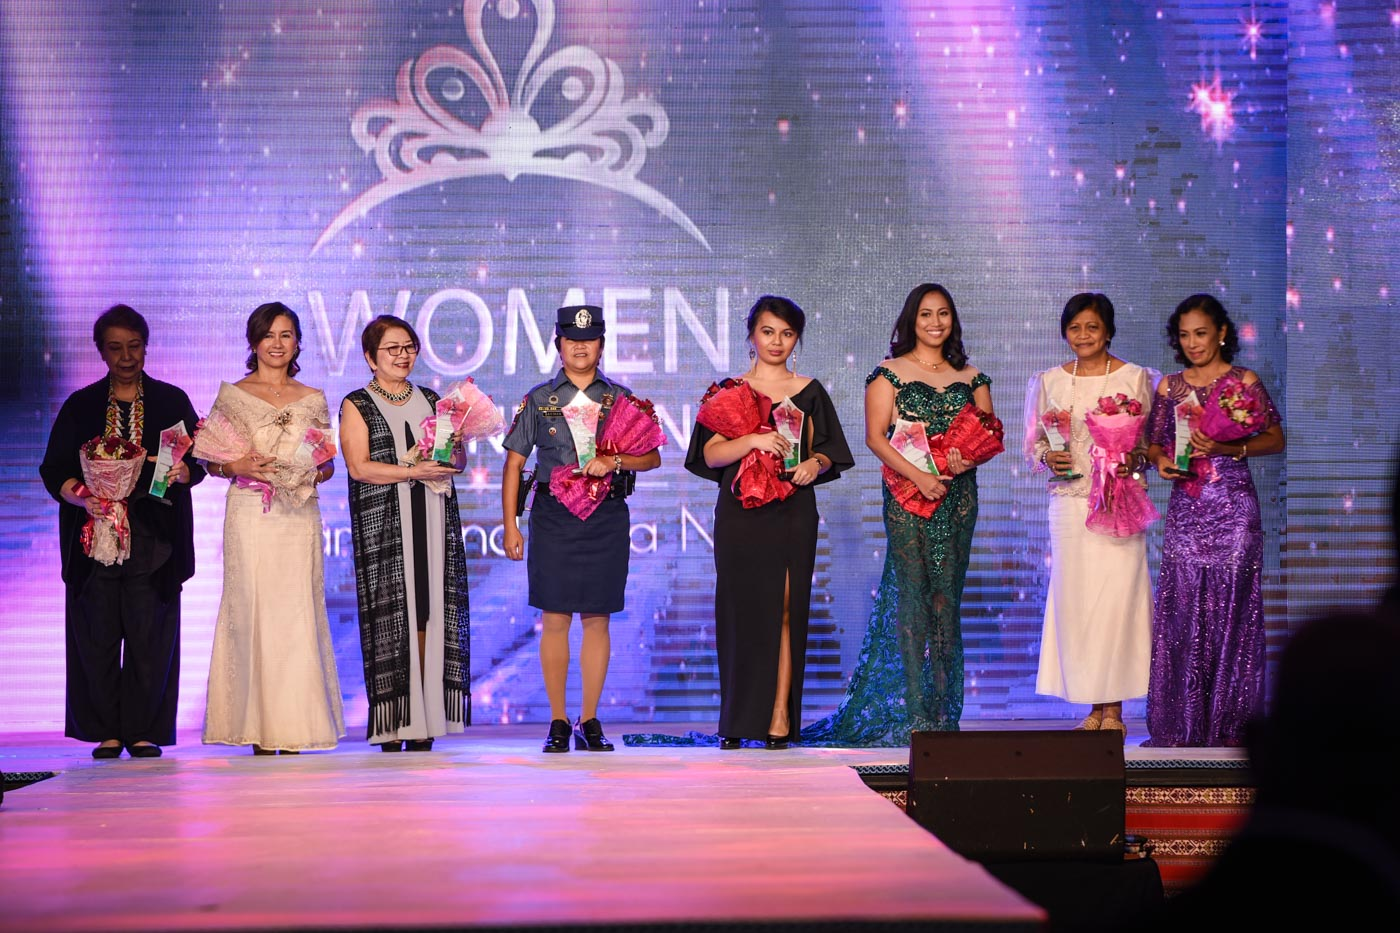 The women honored during the gala night